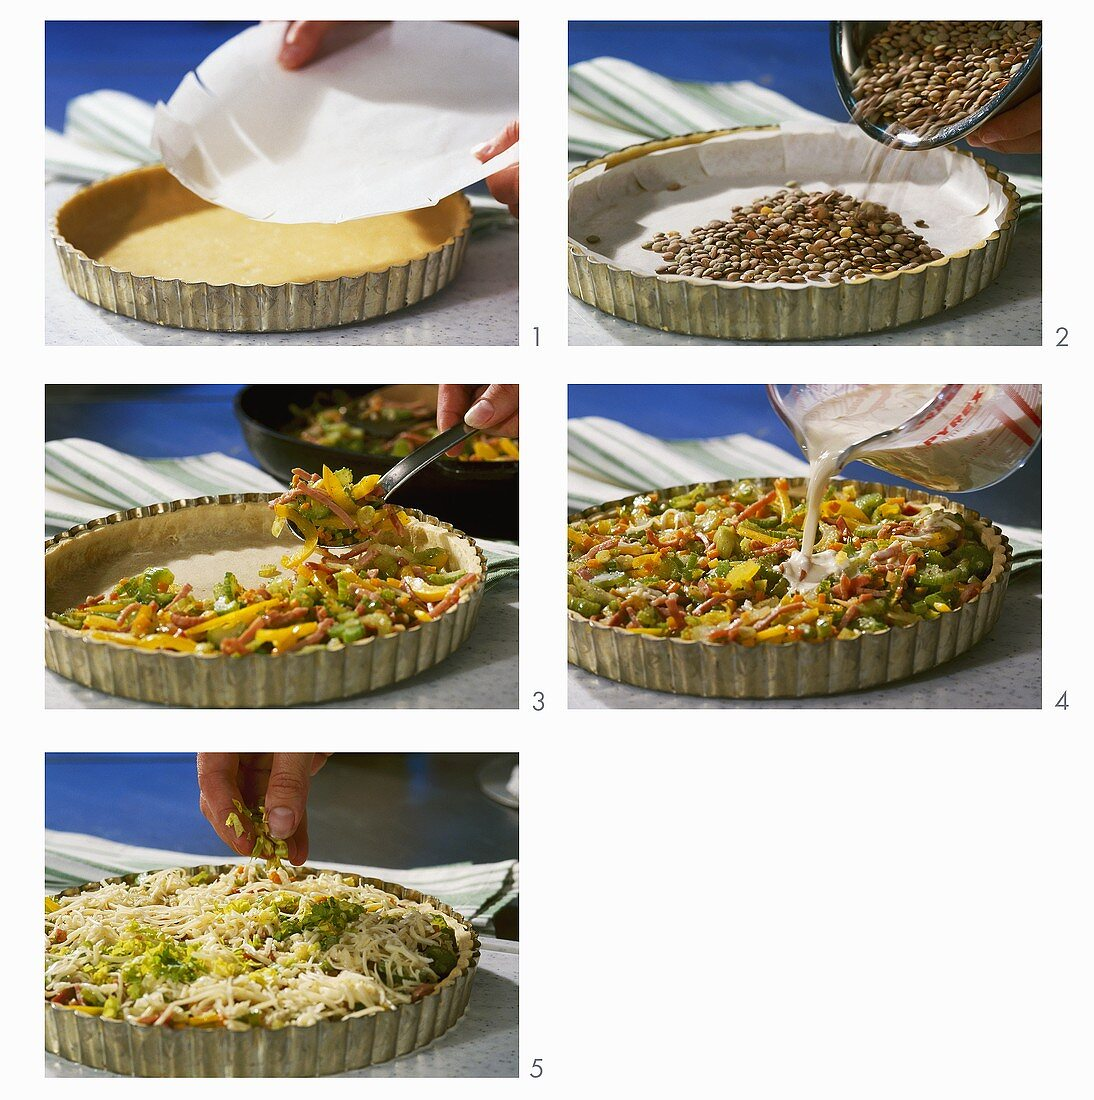 Making a vegetable quiche